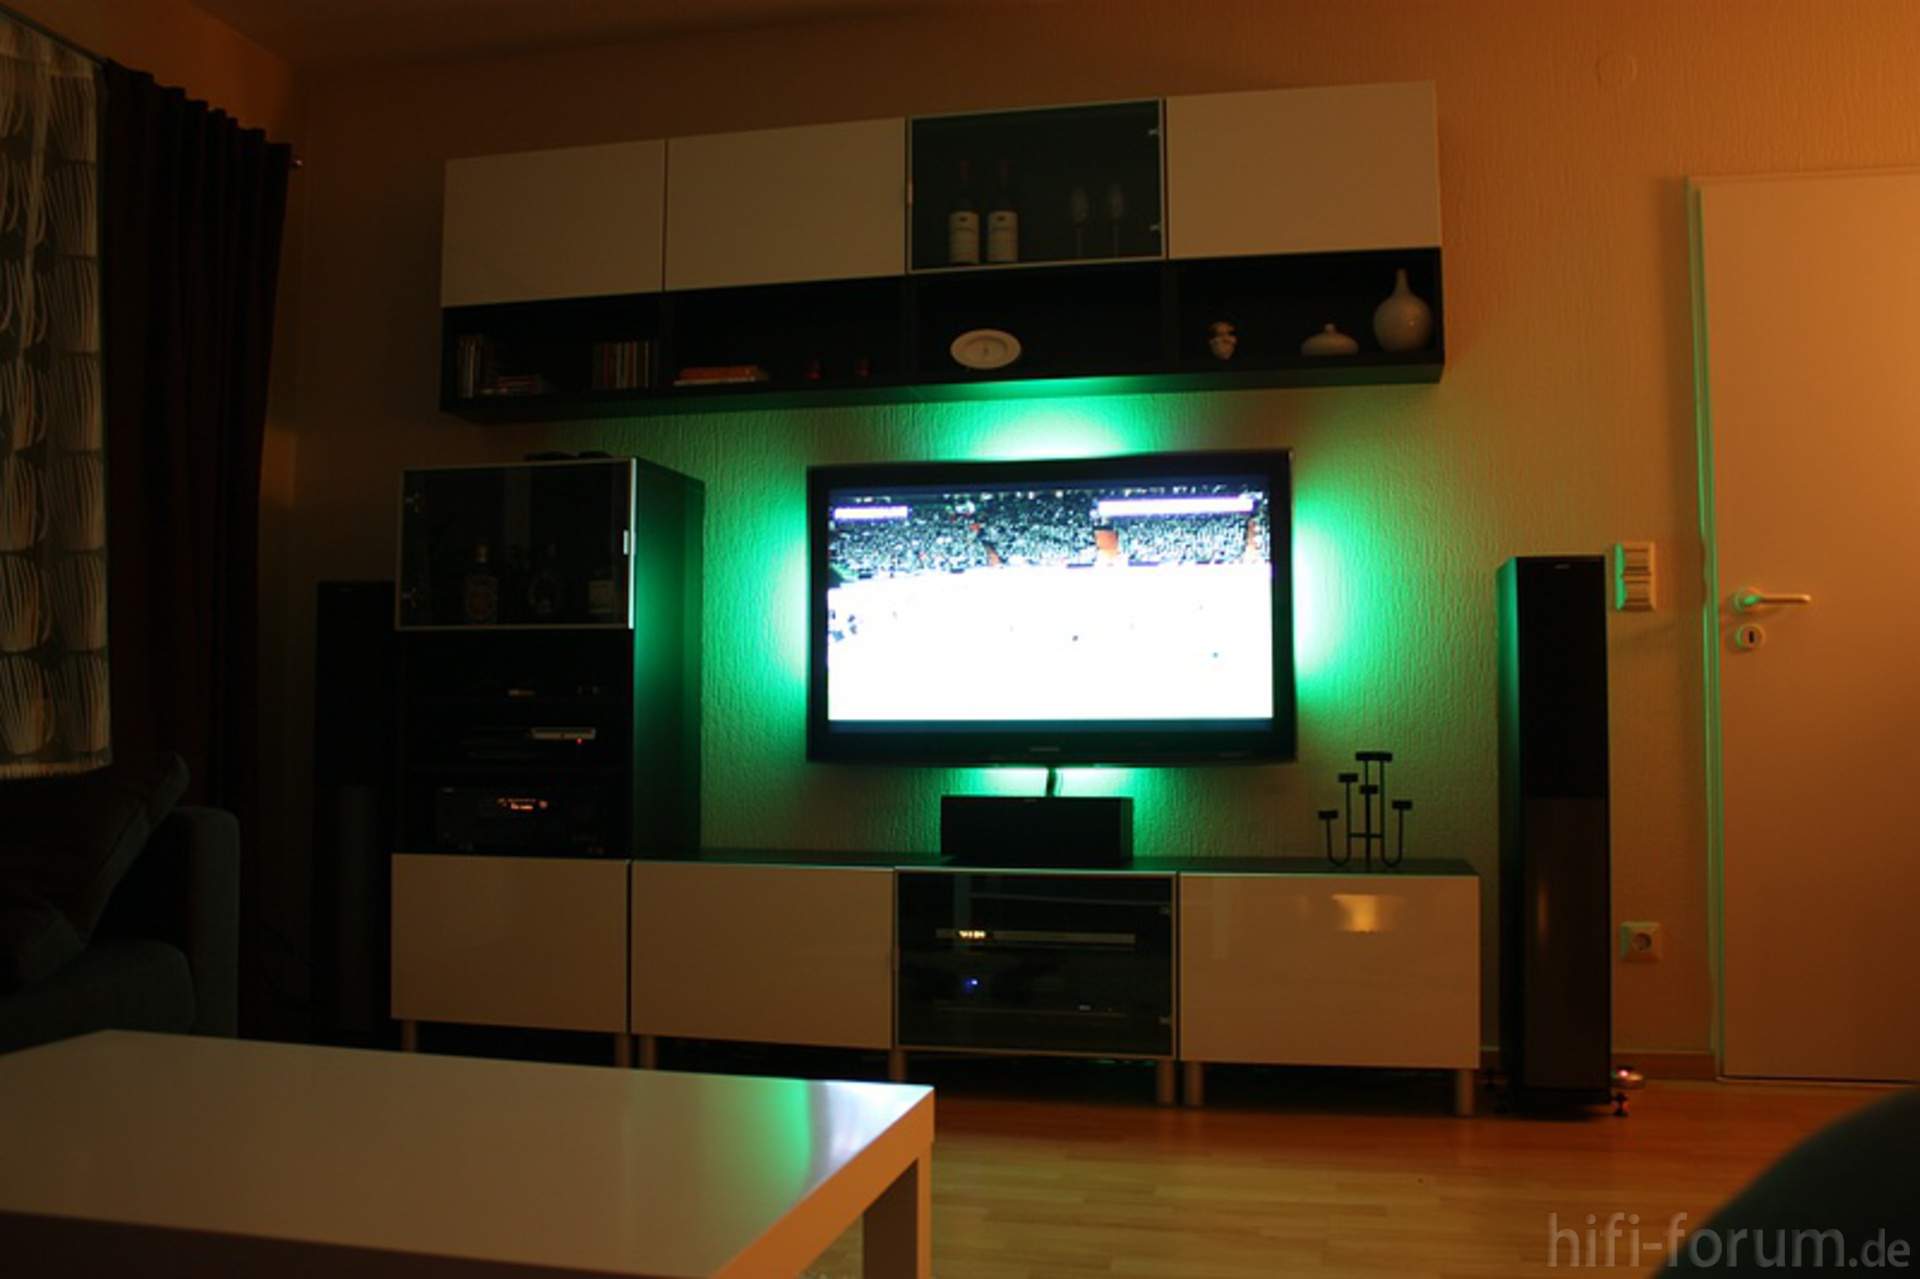 neues wohnzimmer 2 besta heimkino ikea samsung. Black Bedroom Furniture Sets. Home Design Ideas